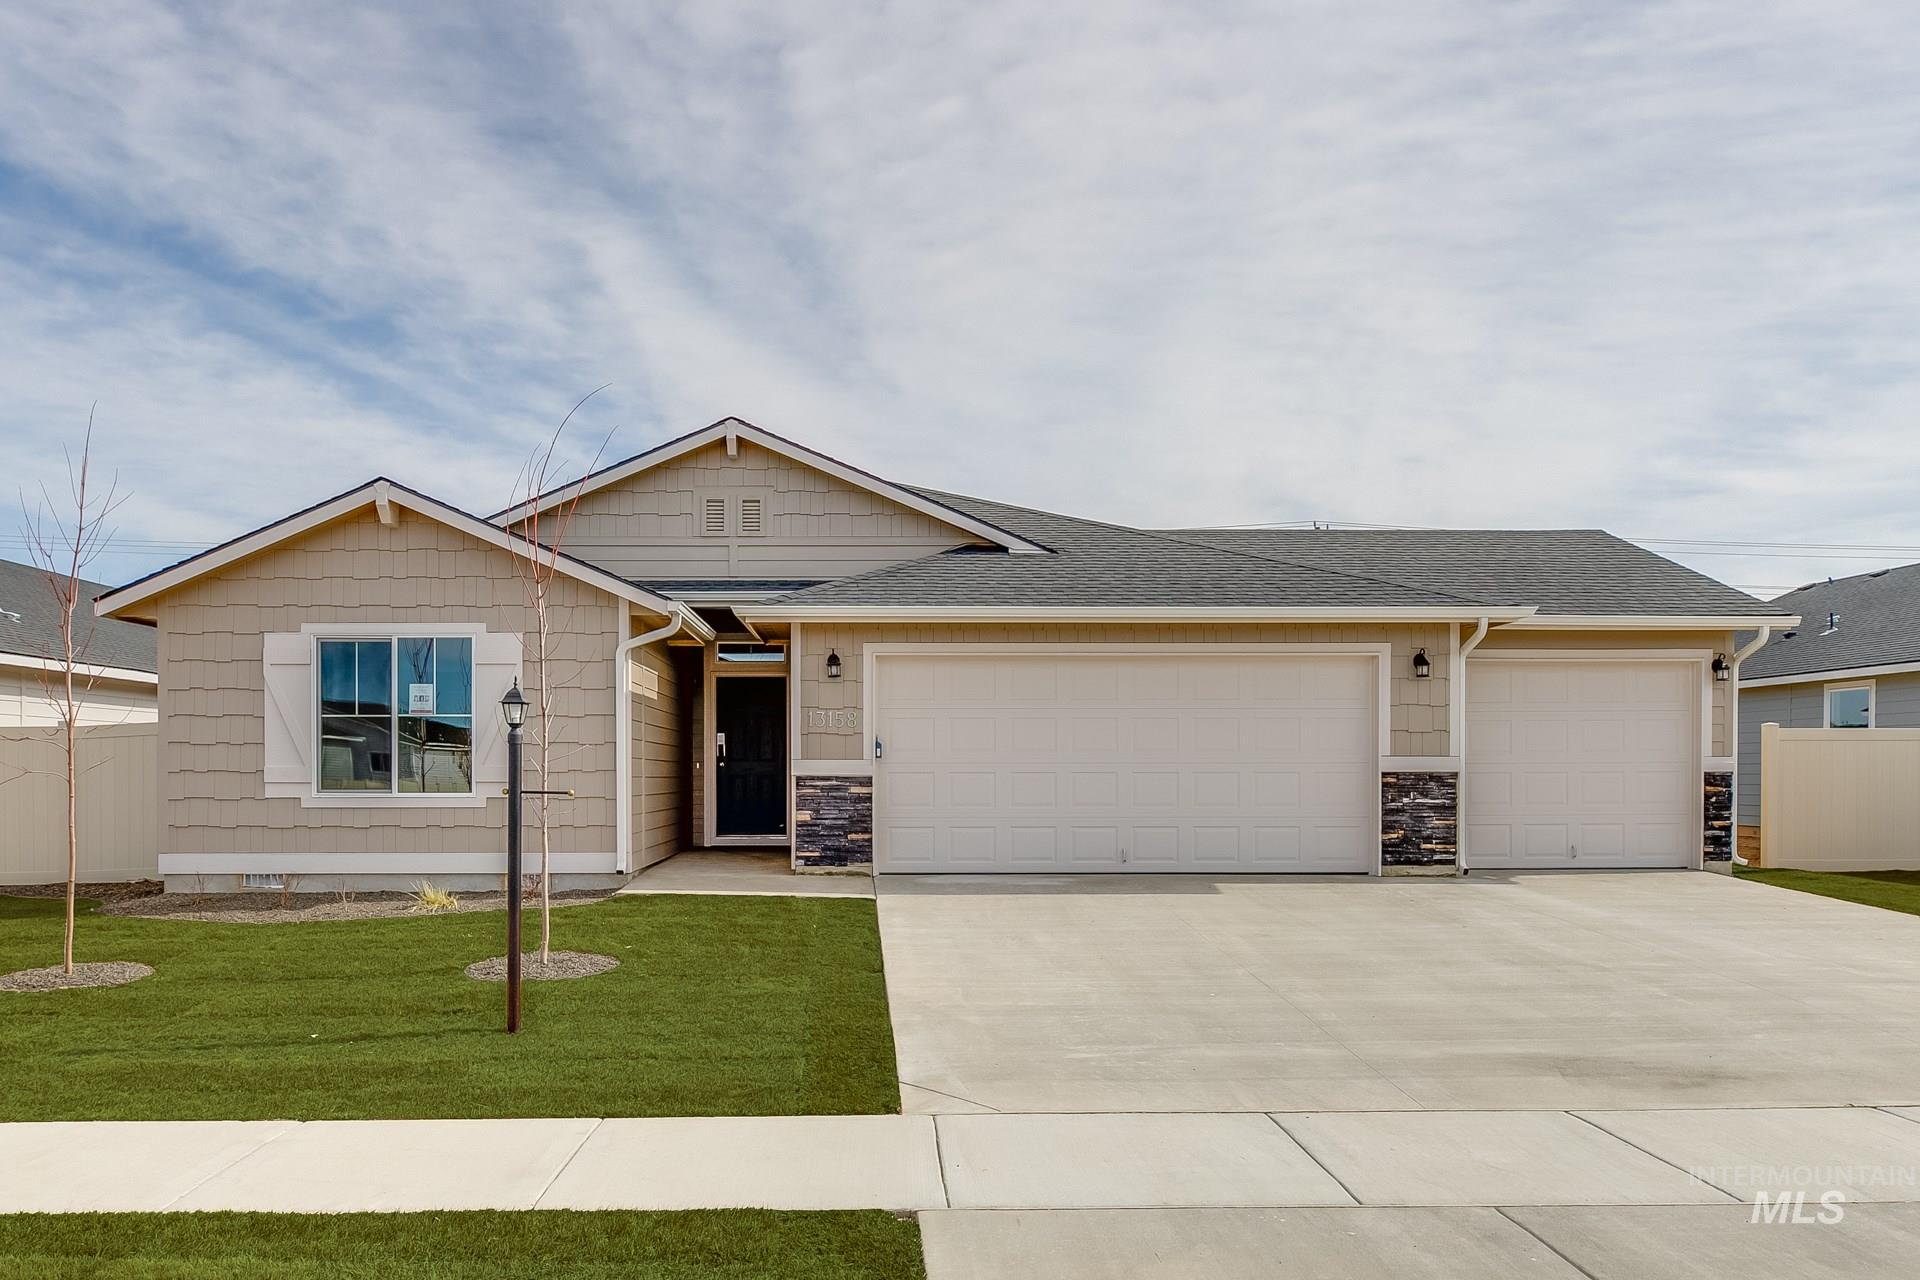 Photo for 16860 Chambers Way, Caldwell, ID 83607 (MLS # 98775532)